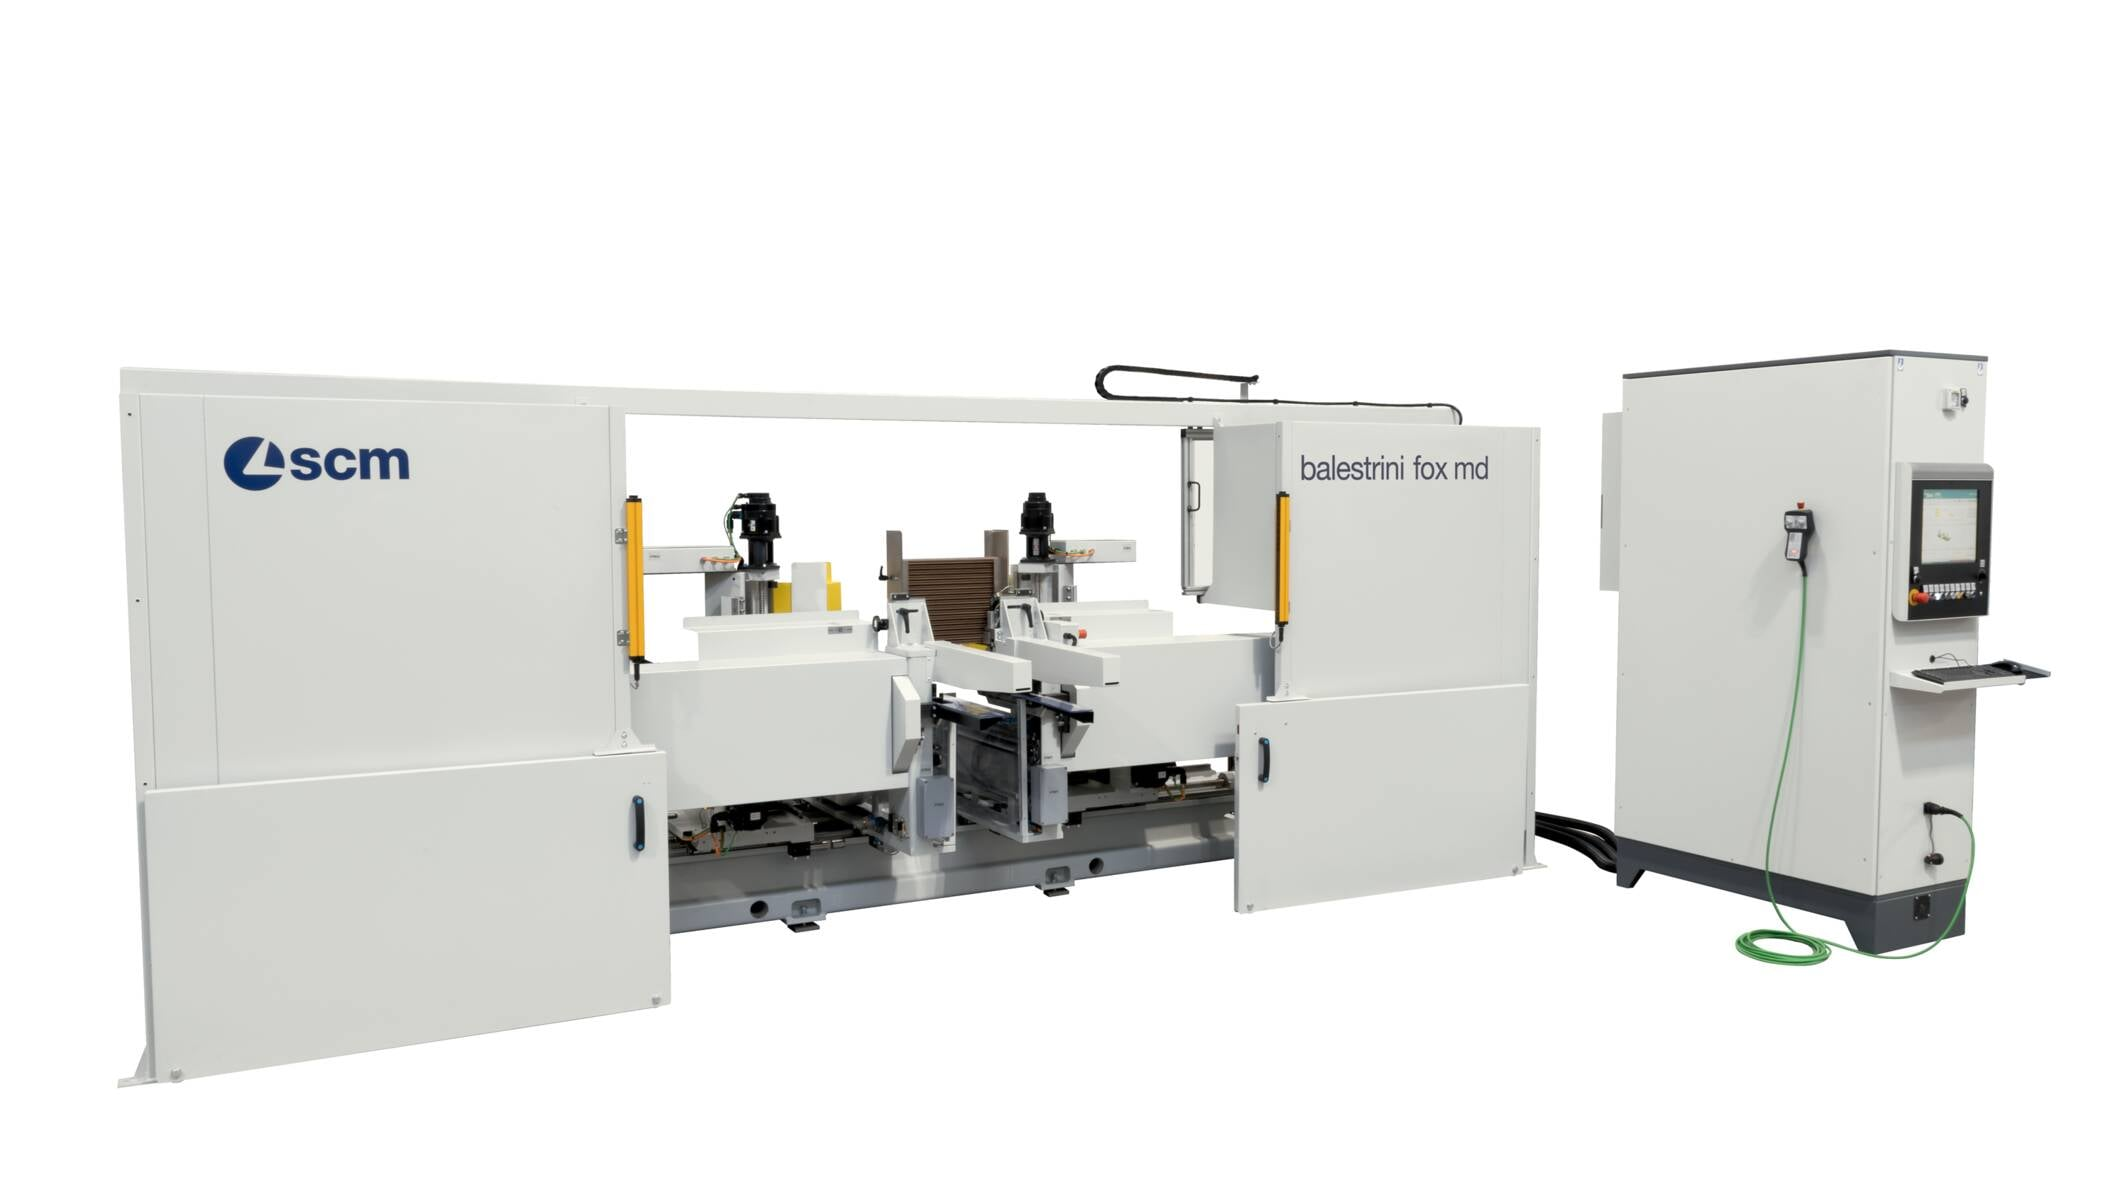 Tenoners, Mortisers, Double sided shapers - Tenoners, Mortisers, Double sided shapers - balestrini fox md